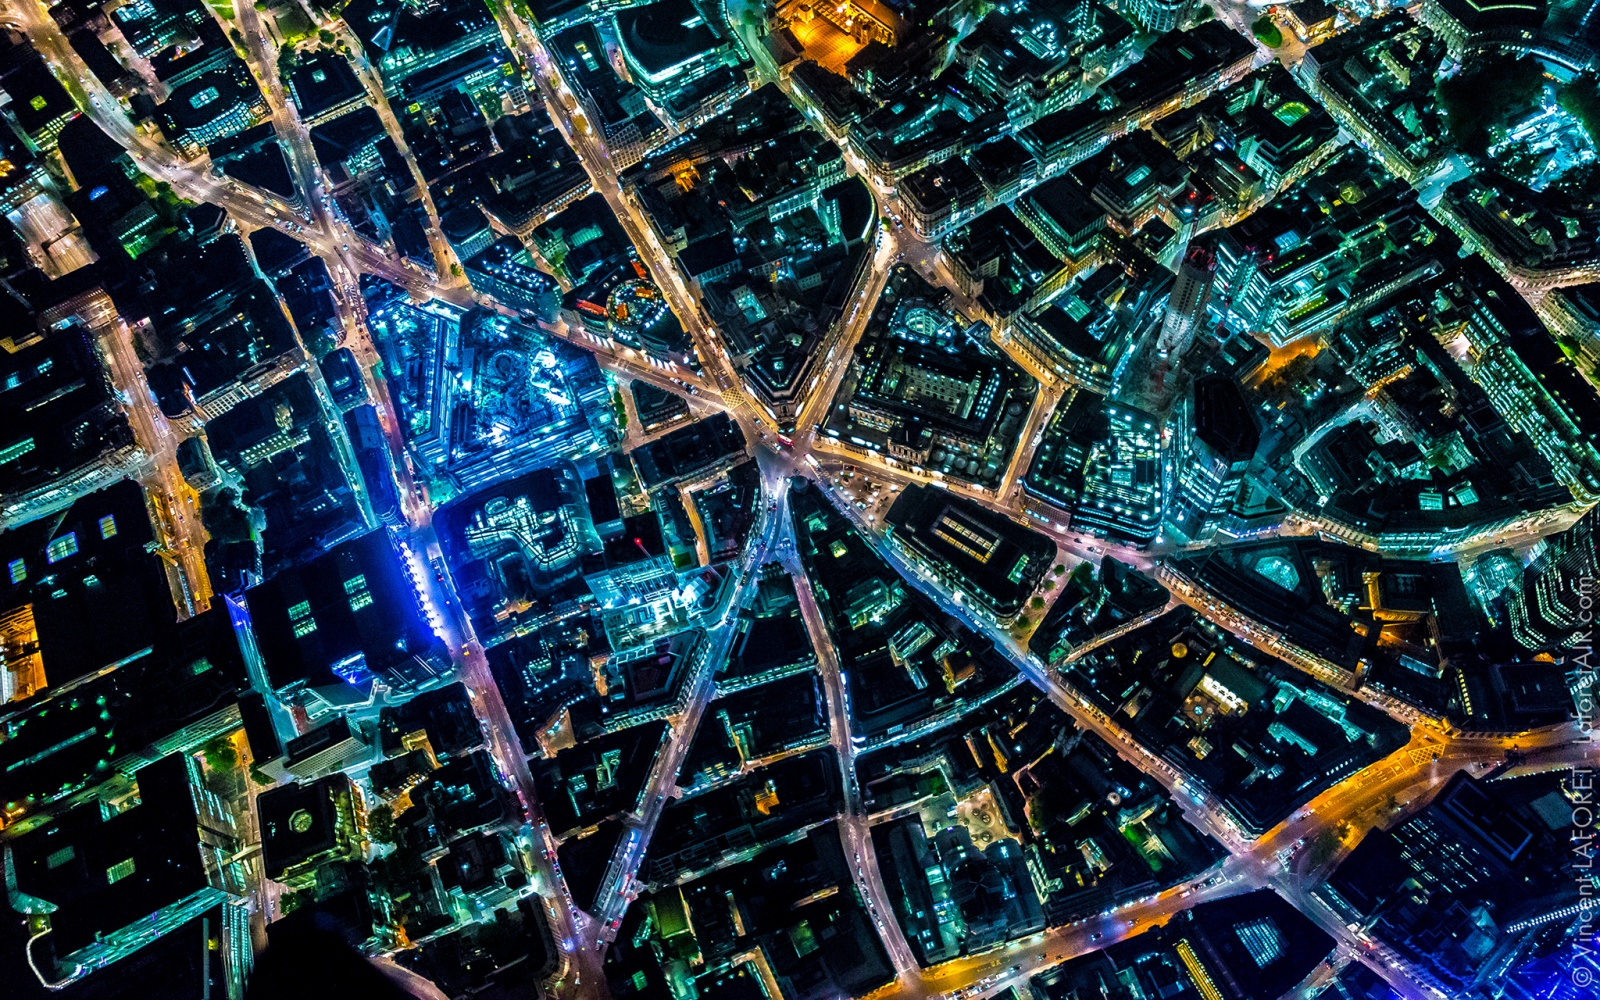 In Photos: Stunning, Chaotic London From Above